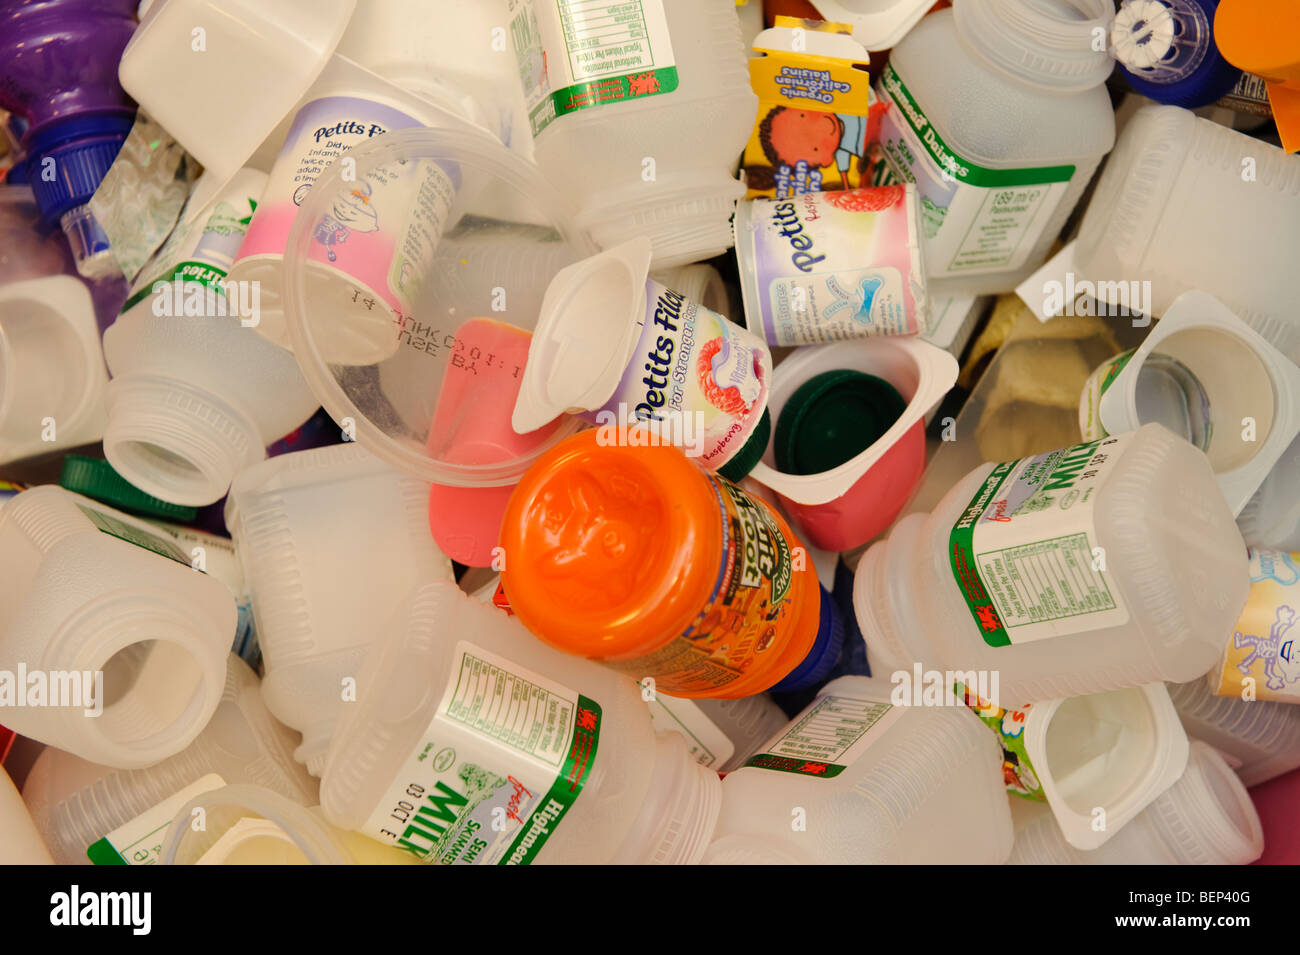 pile of waste plastic bottles and yogurt pots food packaging awaiting stock photo 26301648 alamy. Black Bedroom Furniture Sets. Home Design Ideas